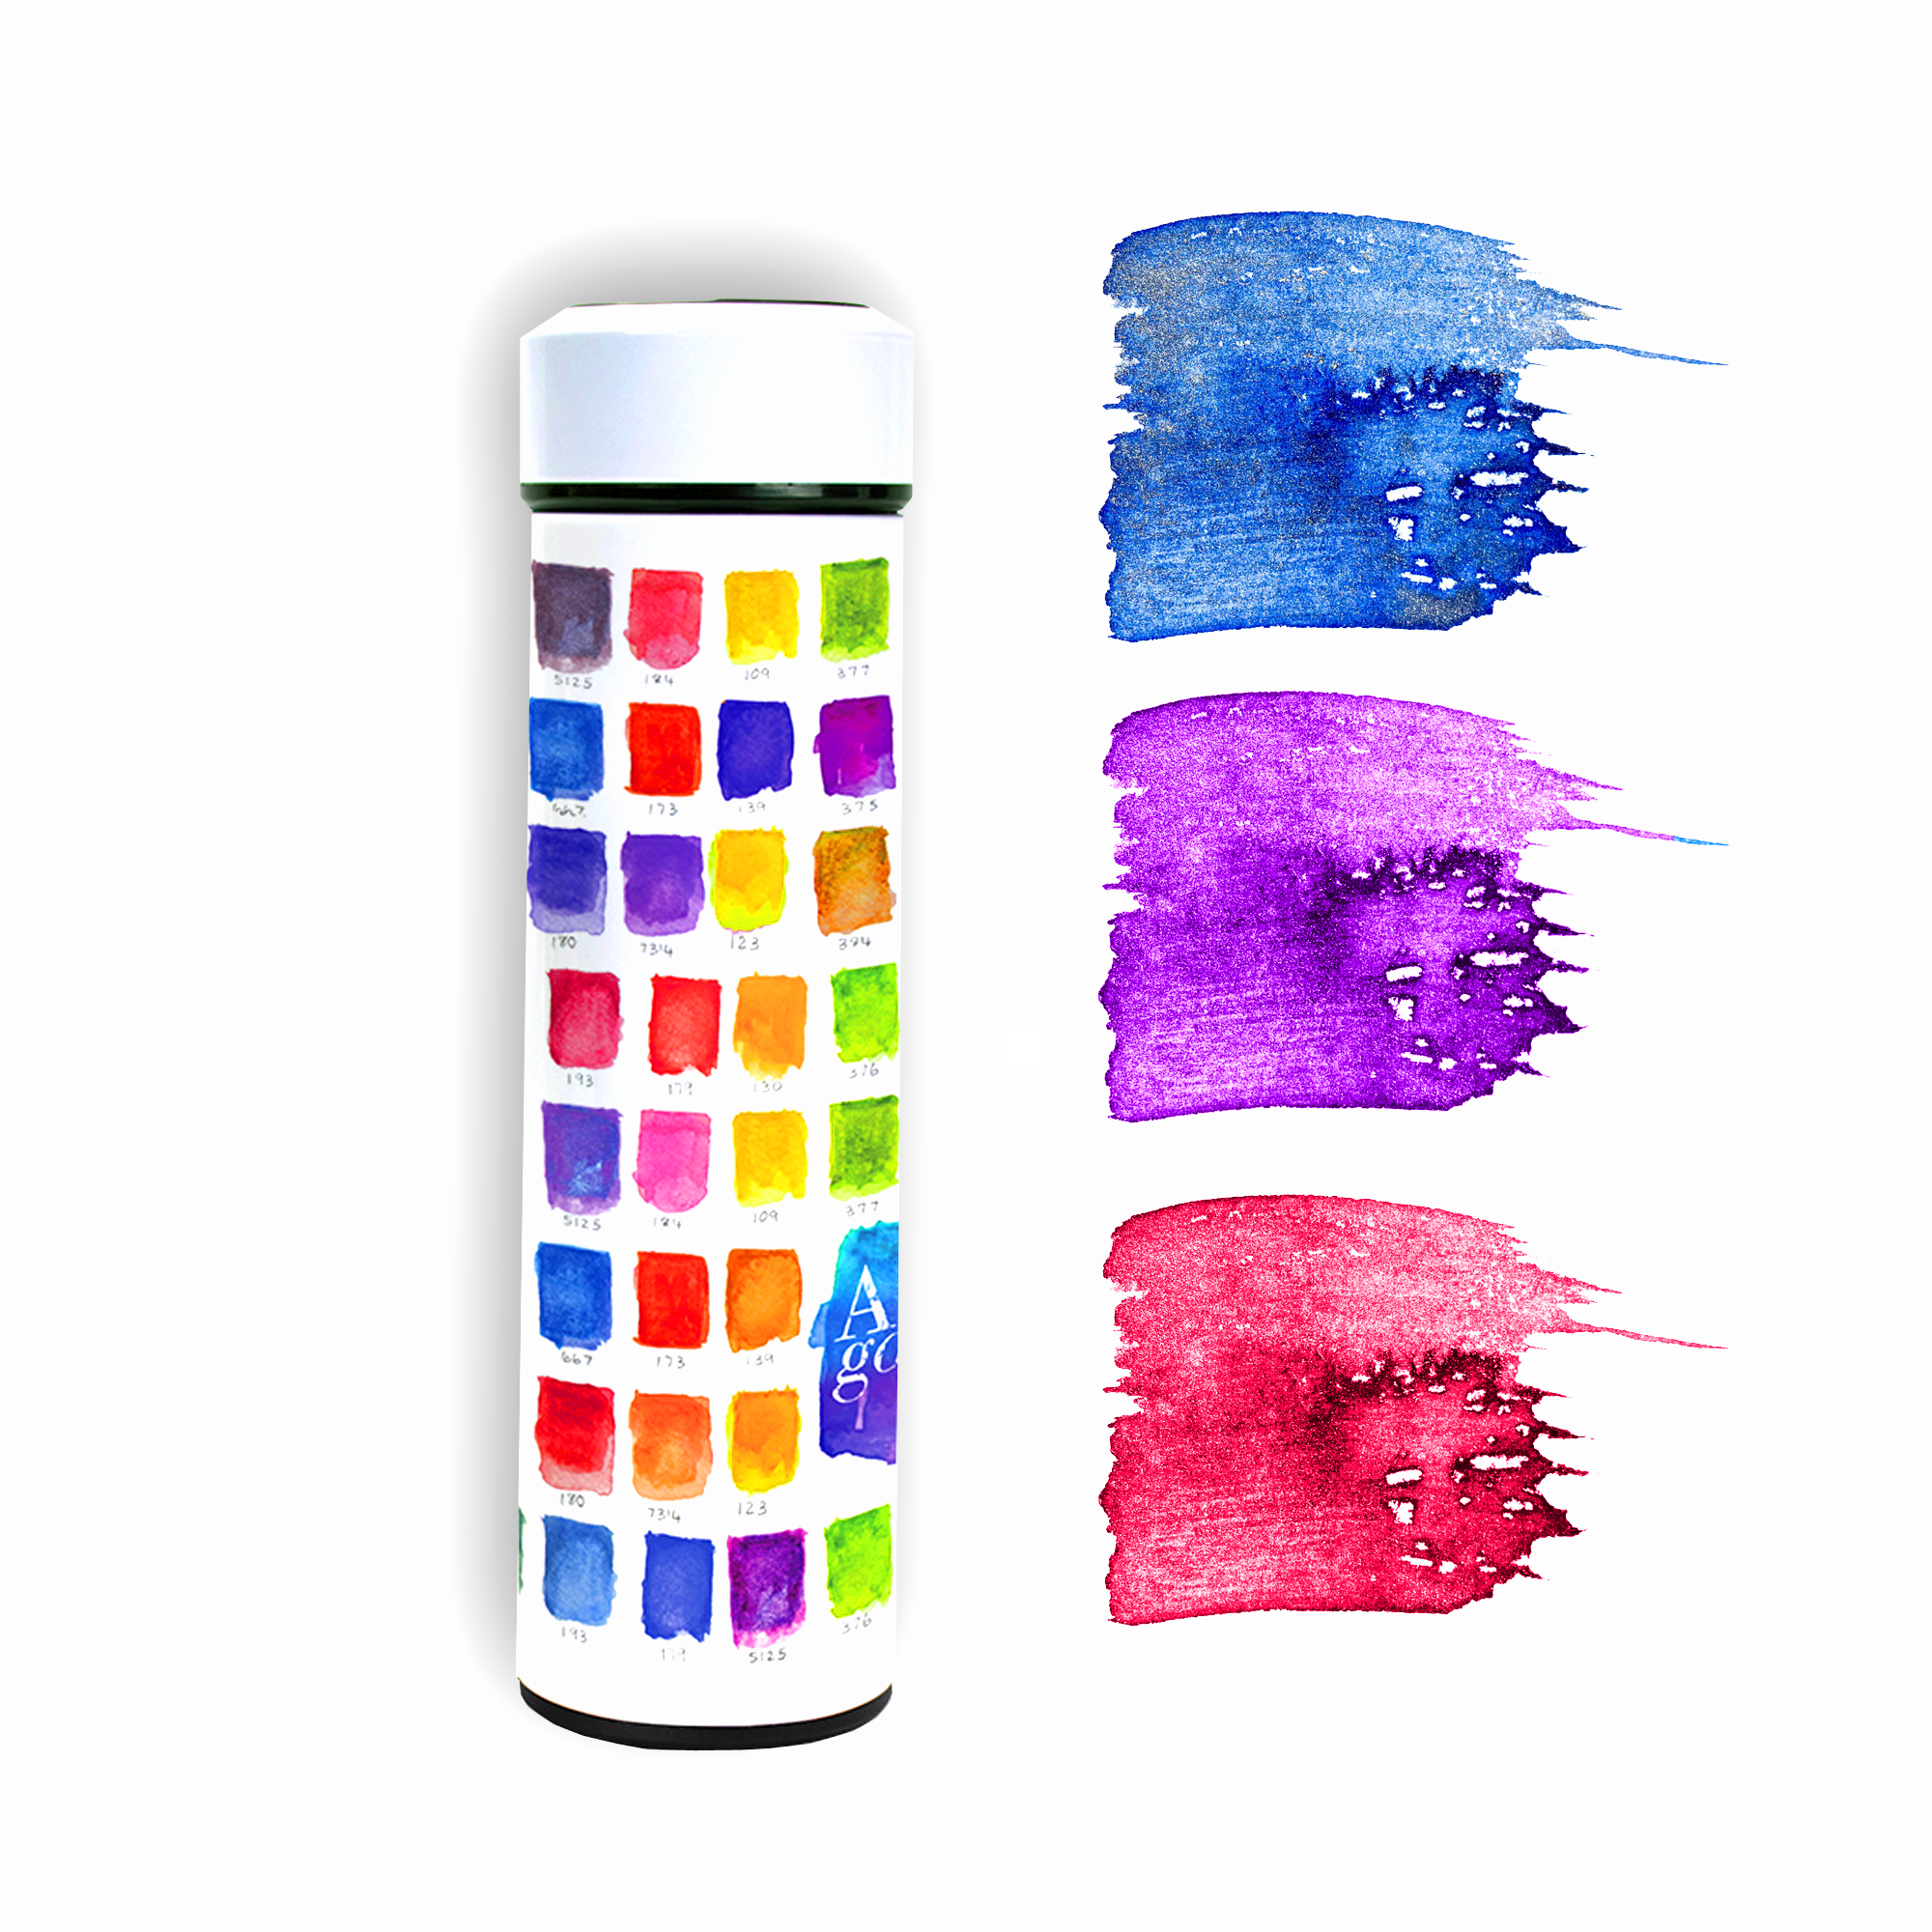 Masterpiece Drinkware, Swatches, The Contour